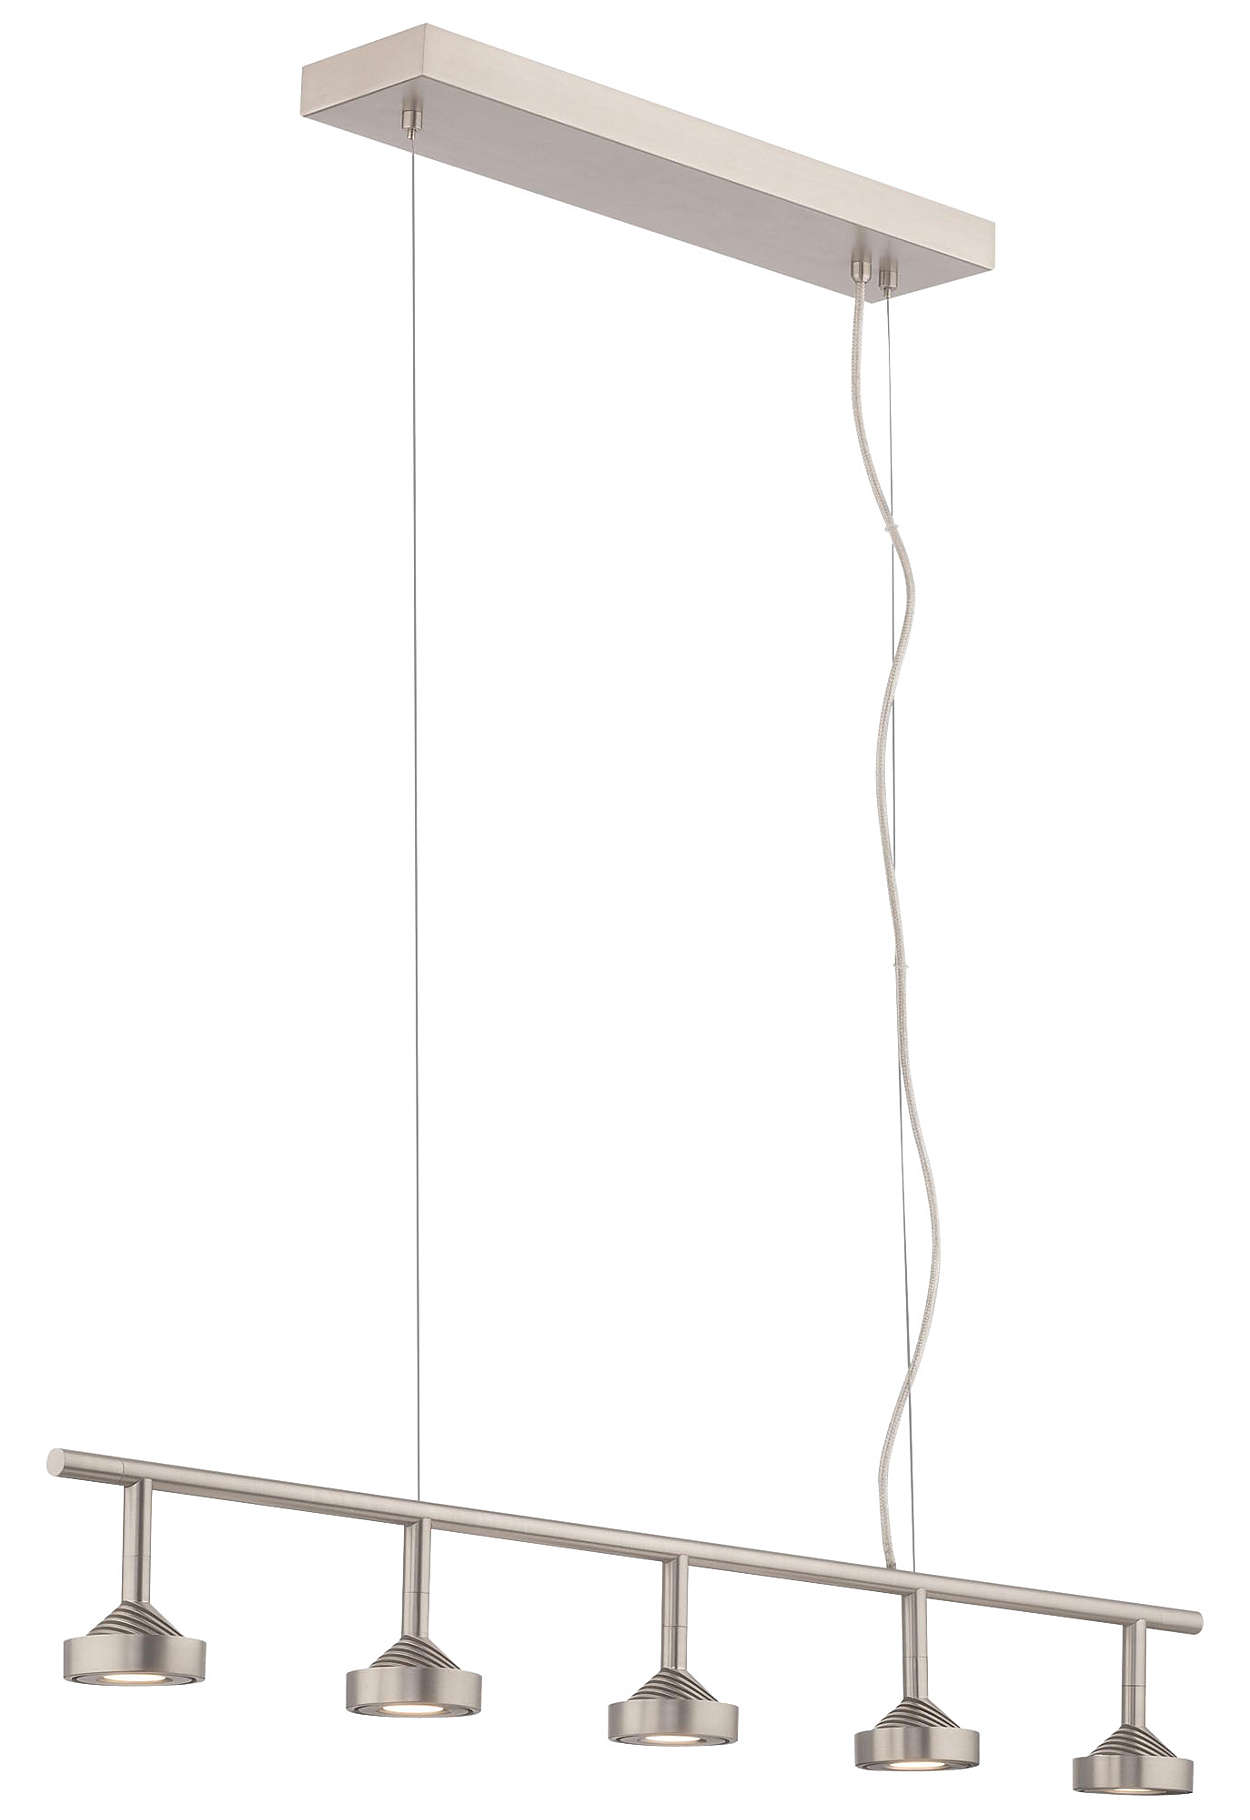 Yo-Yo 5-light LED Pendant in Satin Nickel finish